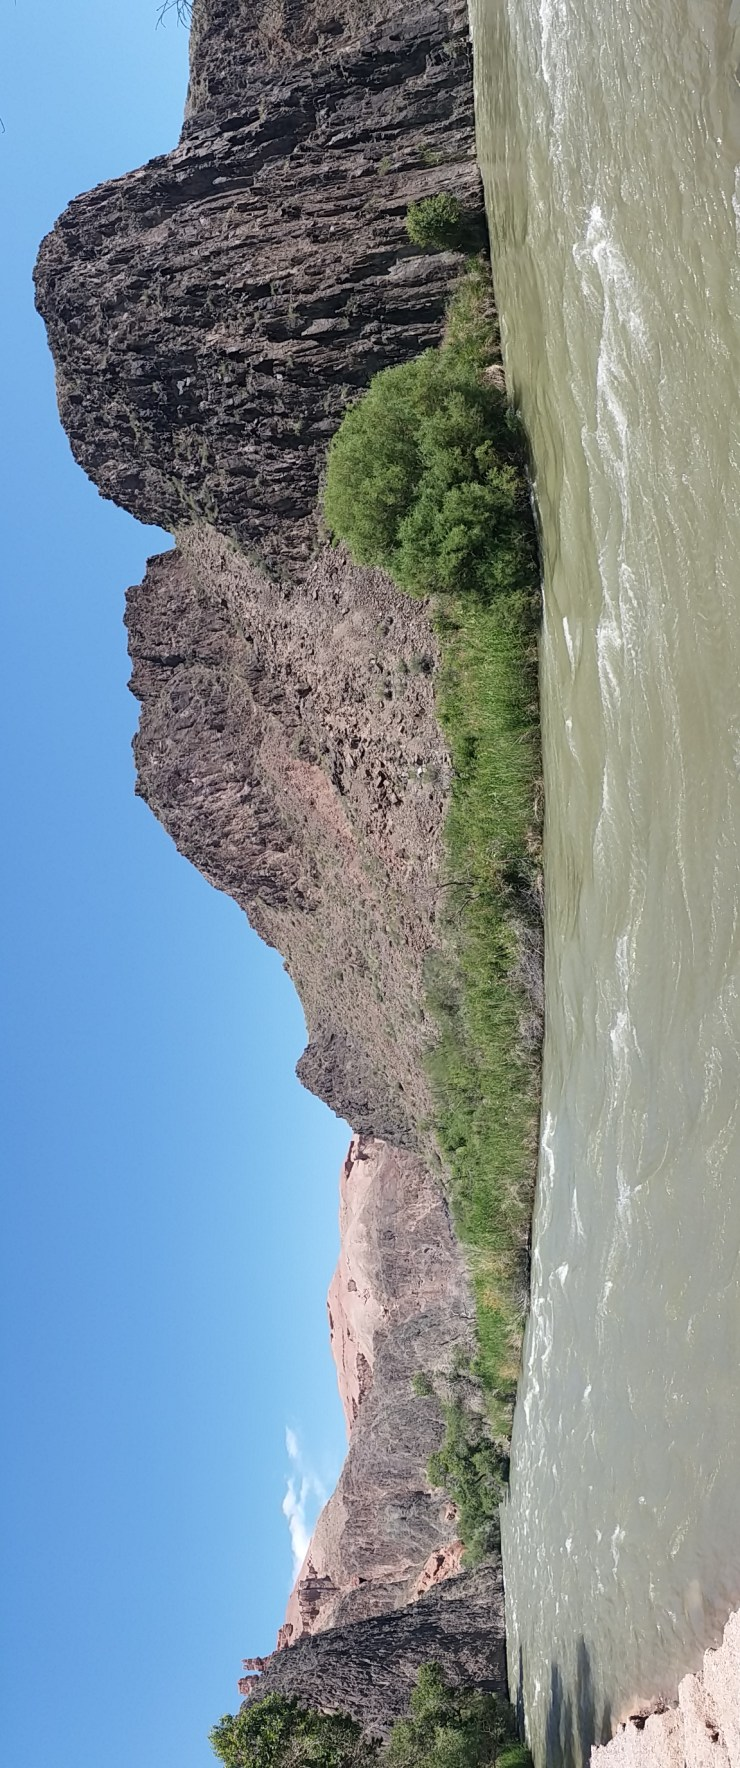 K in Motion Travel Blog. Almaty Region Kazakhstan. Charyn River at the end of Charyn Canyon